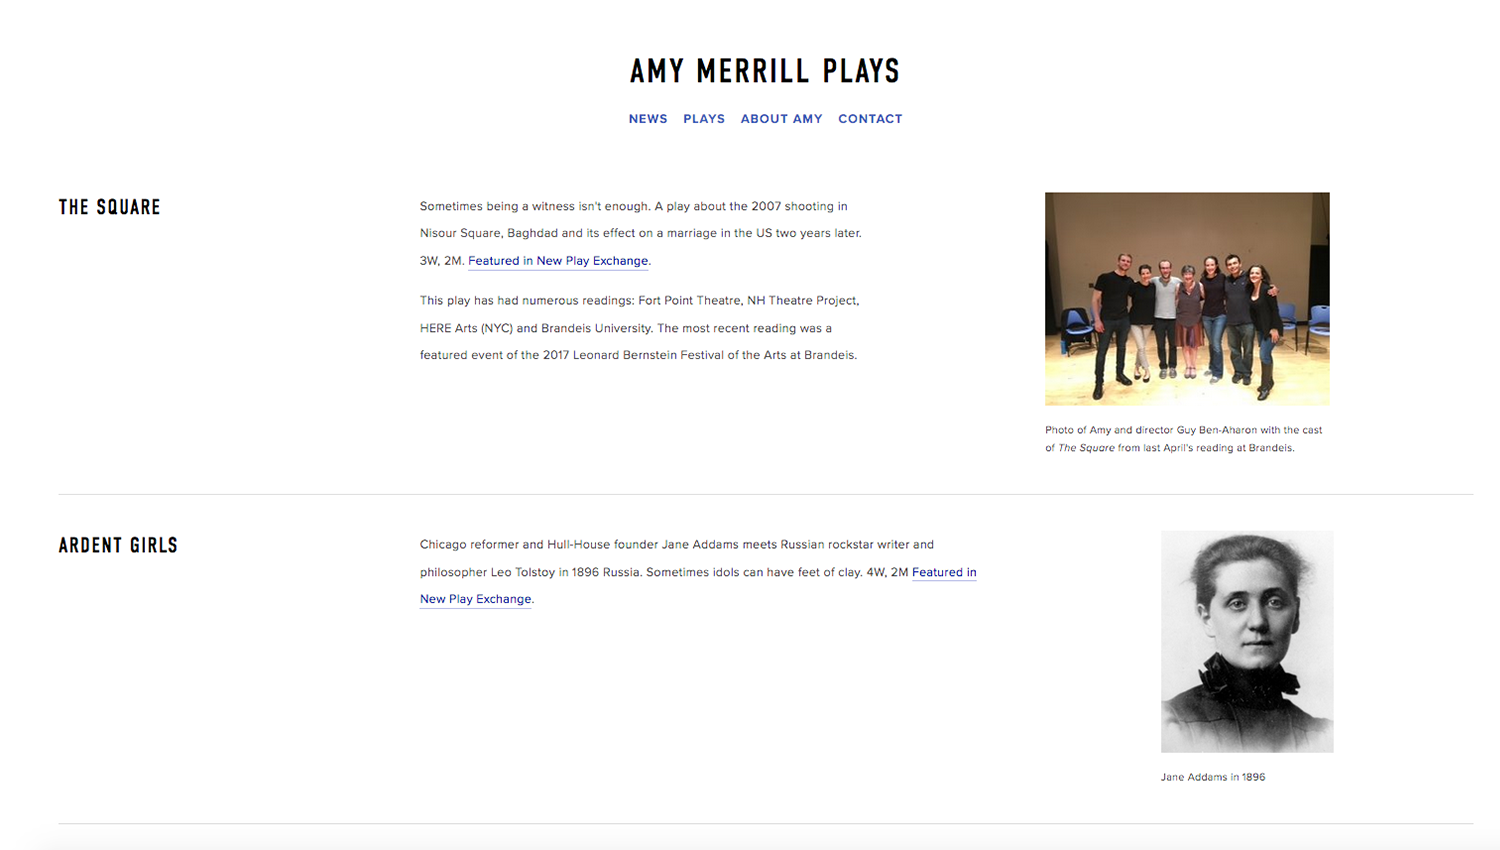 amymerrill2.png